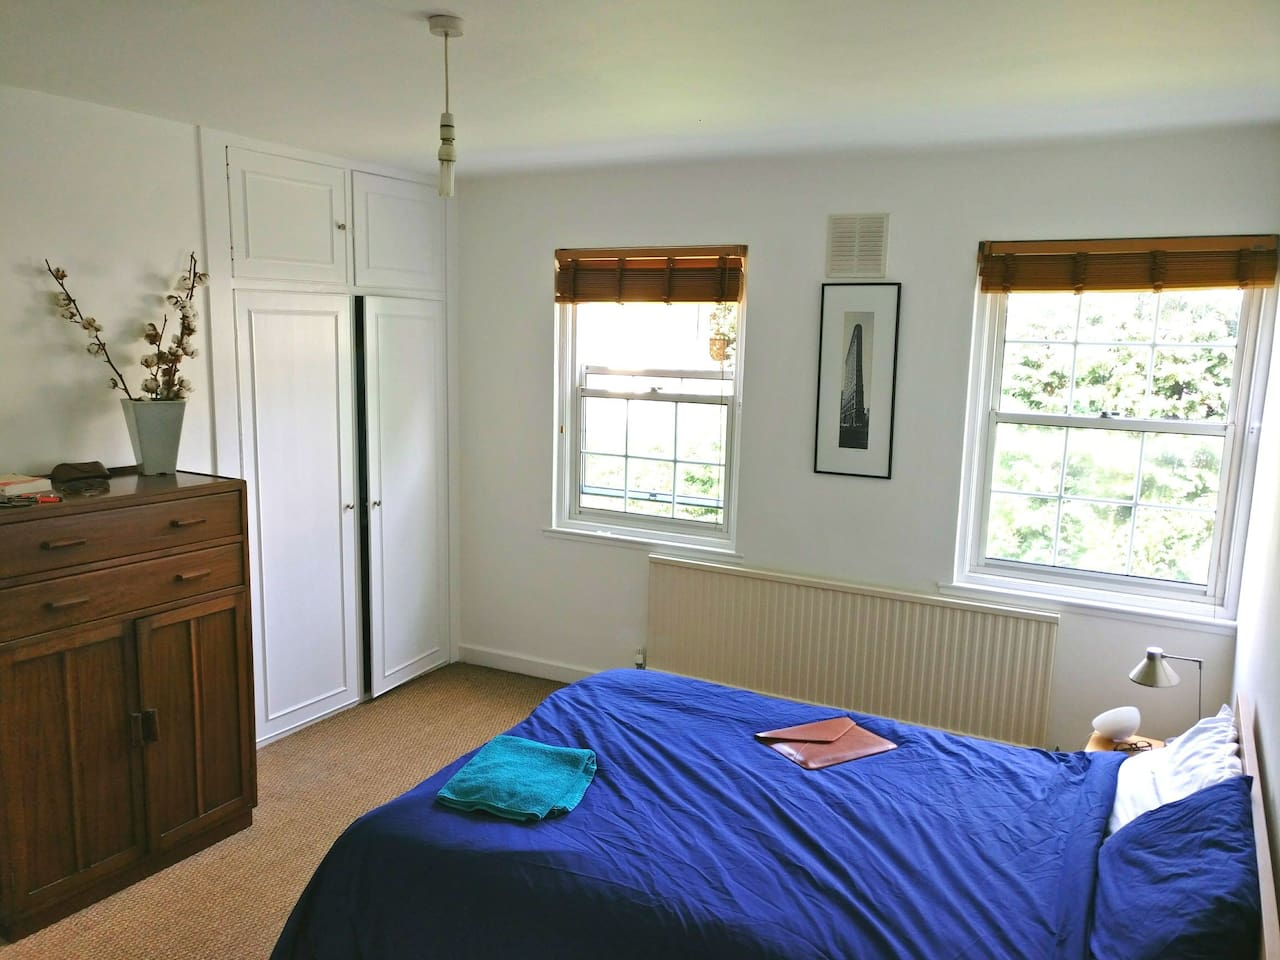 Large double bedroom with private ensuite (toilets. sink and shower)- bigger than it looks!